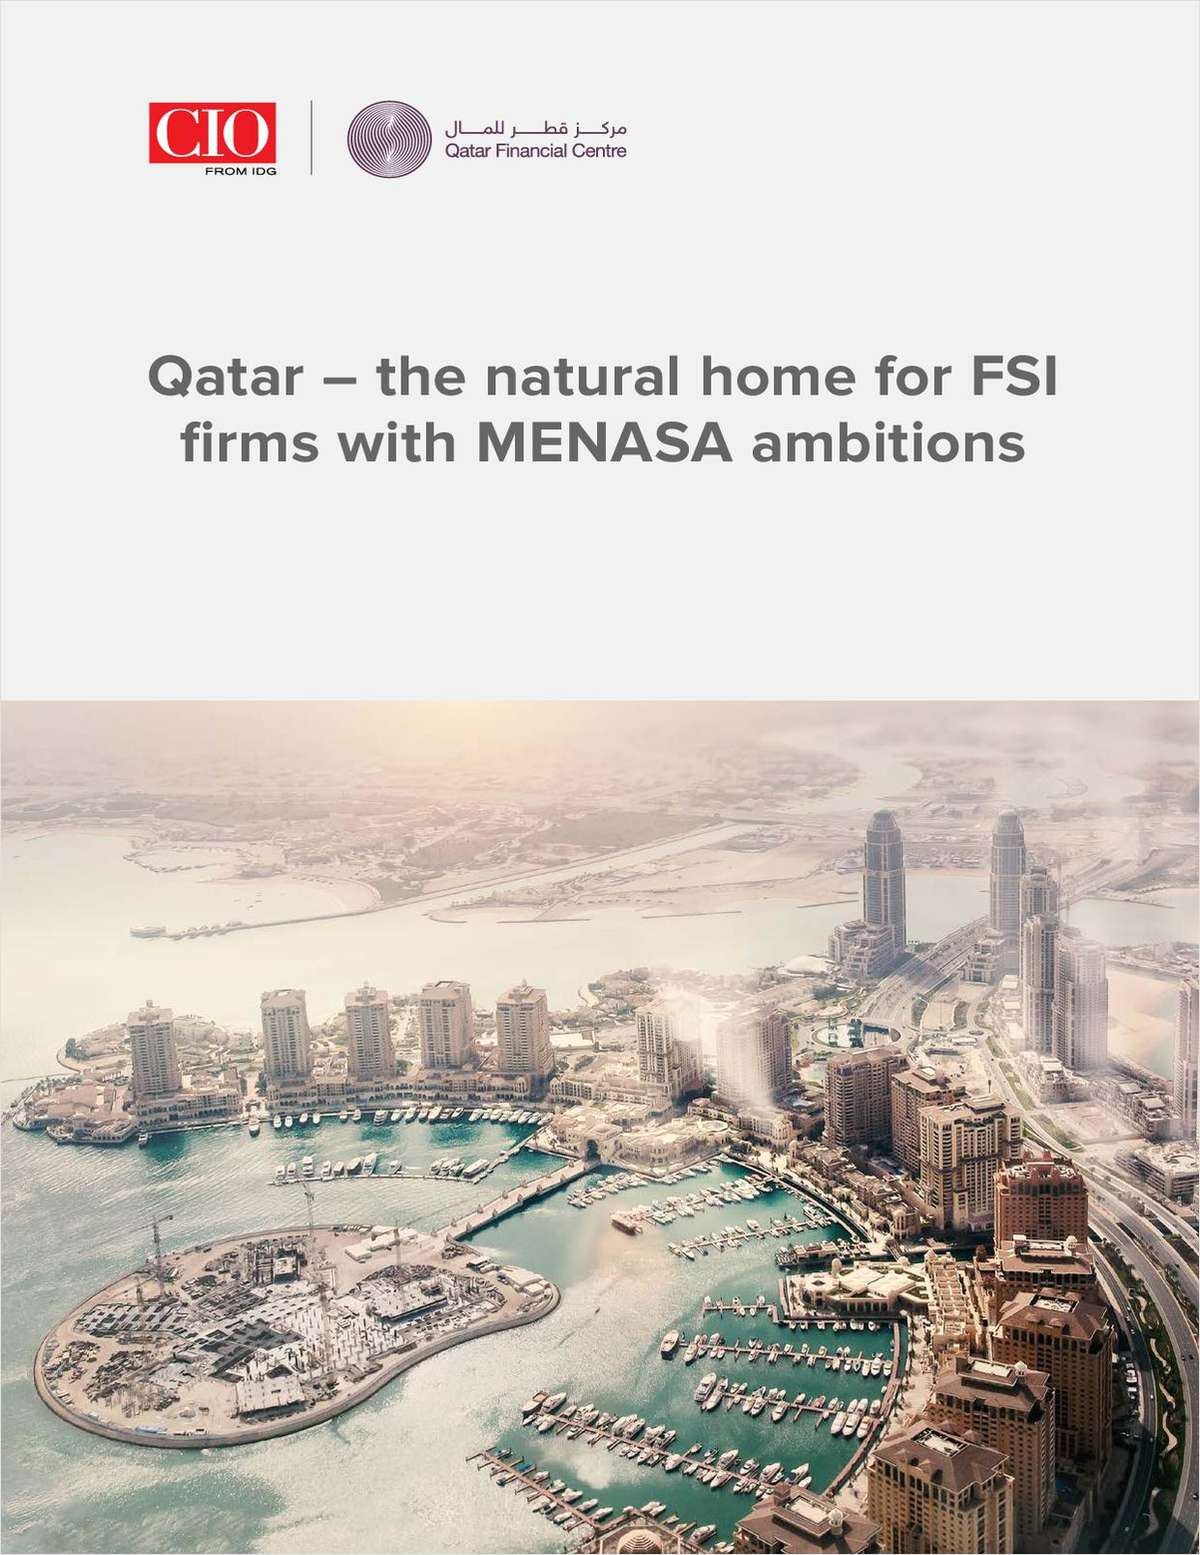 Qatar -- the natural home for FSI firms with MENASA ambitions